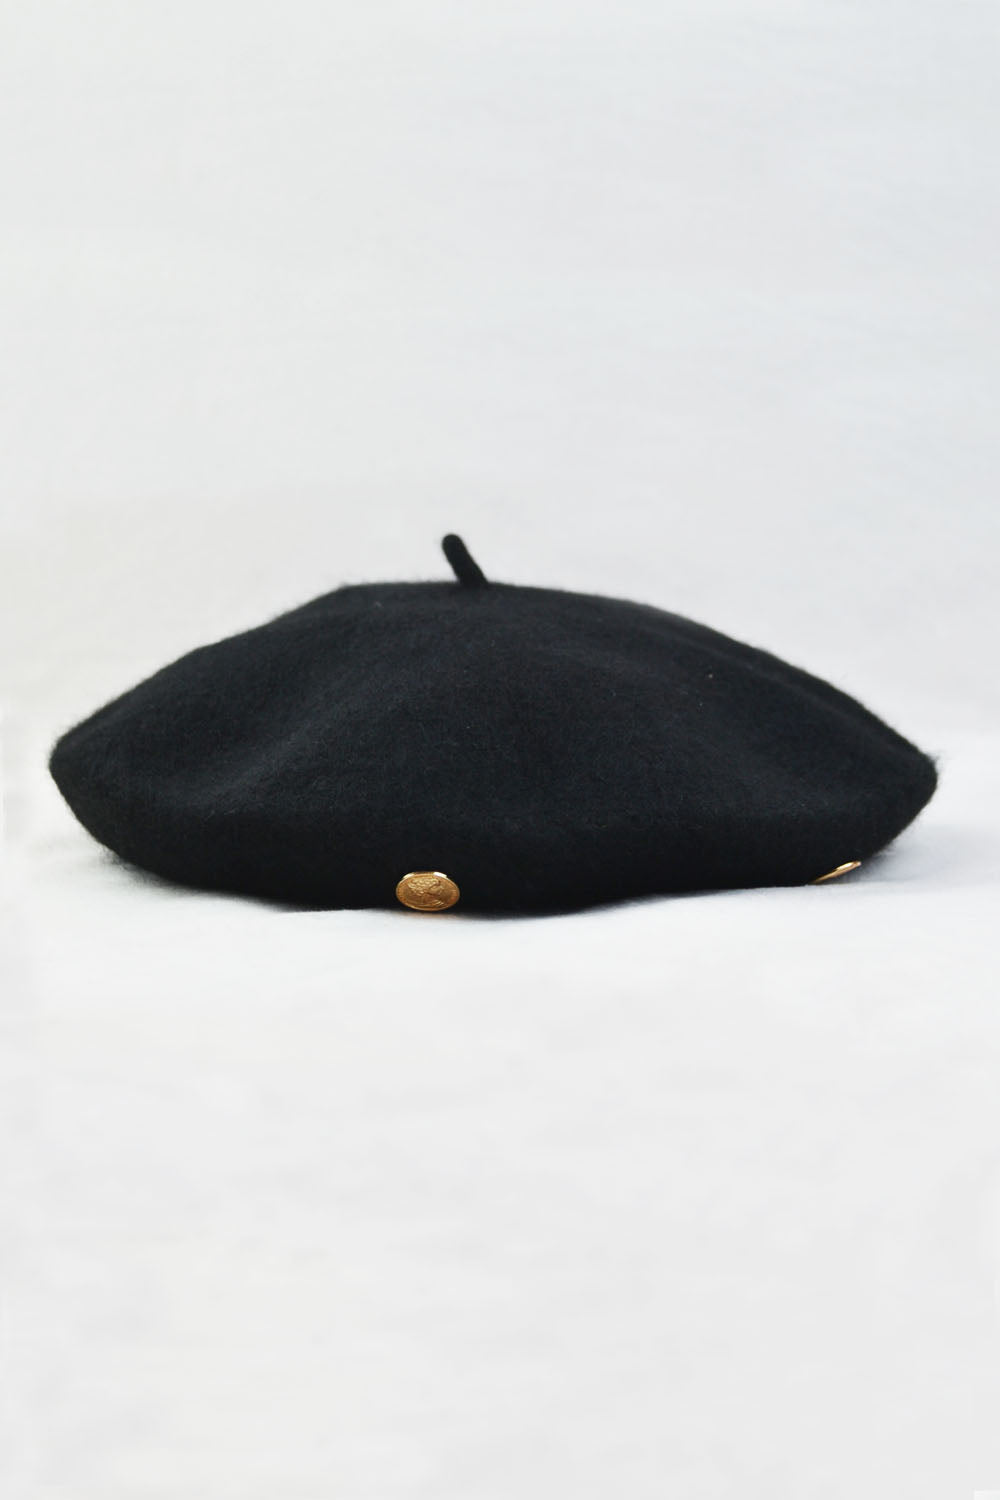 Black Beret with Gold Coin Detailing